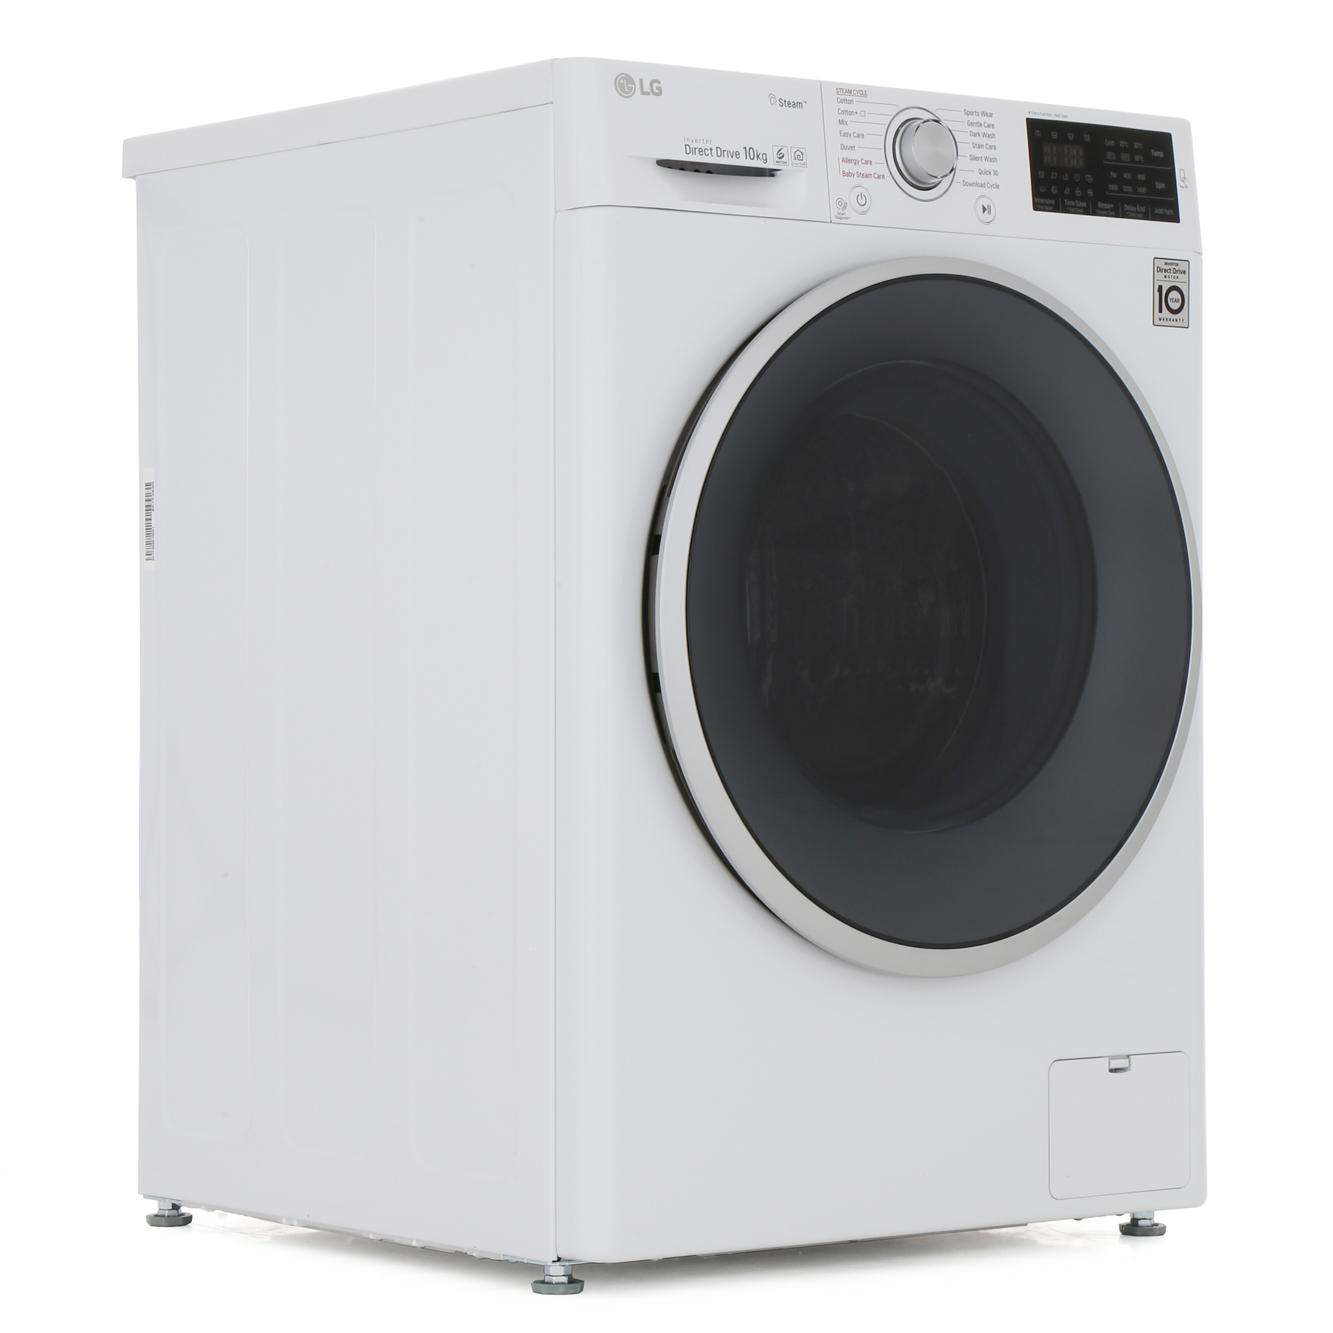 LG F4J6JY1W 10KG Washing Machine with Steam and Inverter Direct Drive Motor